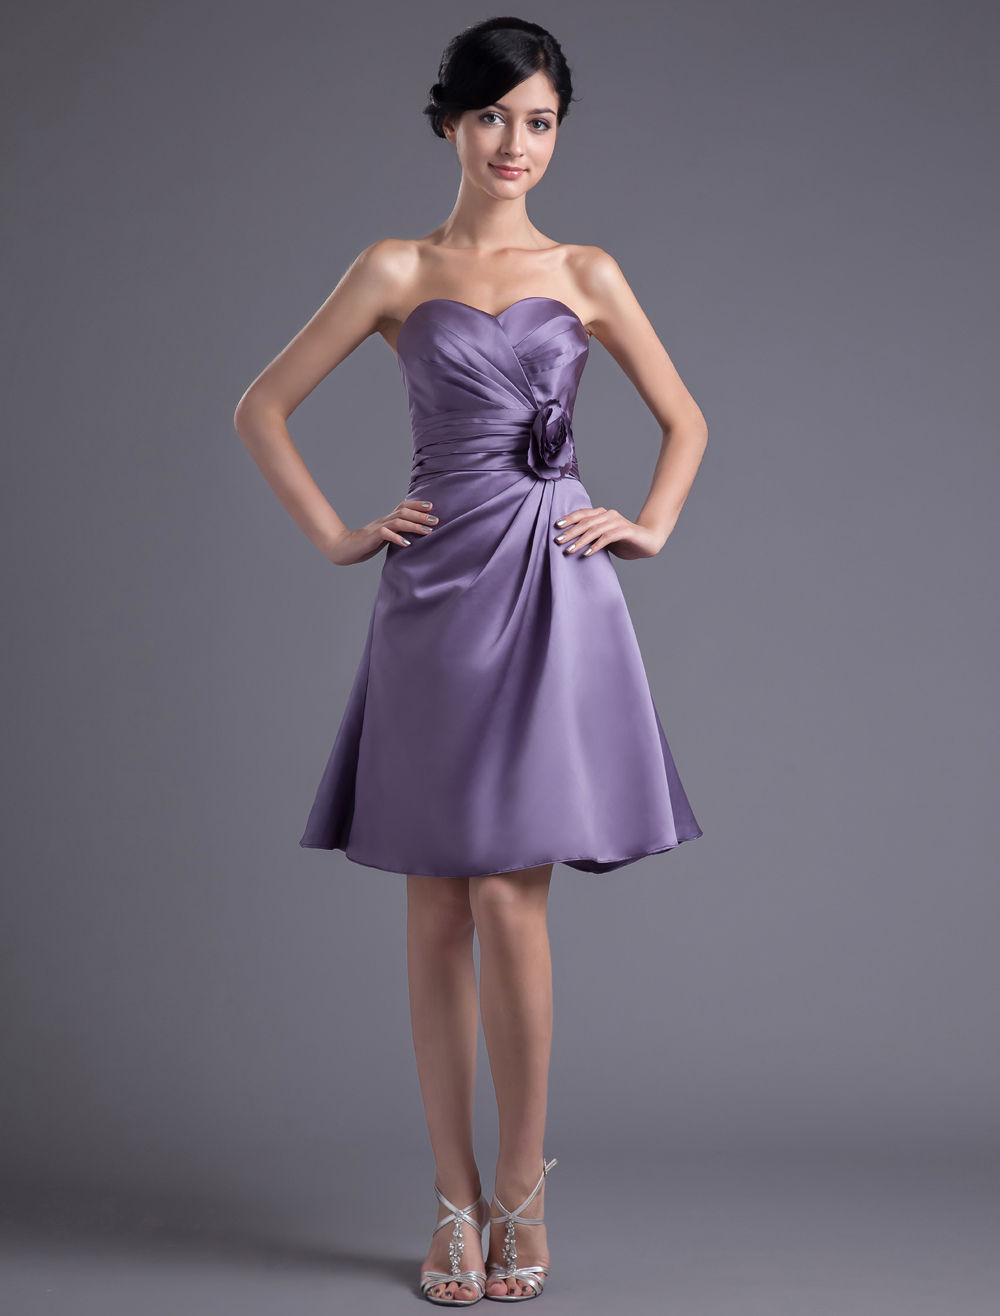 A-line Flower Satin Knee-Length Lilac Bridesmaid Dress with Sweetheart Neck